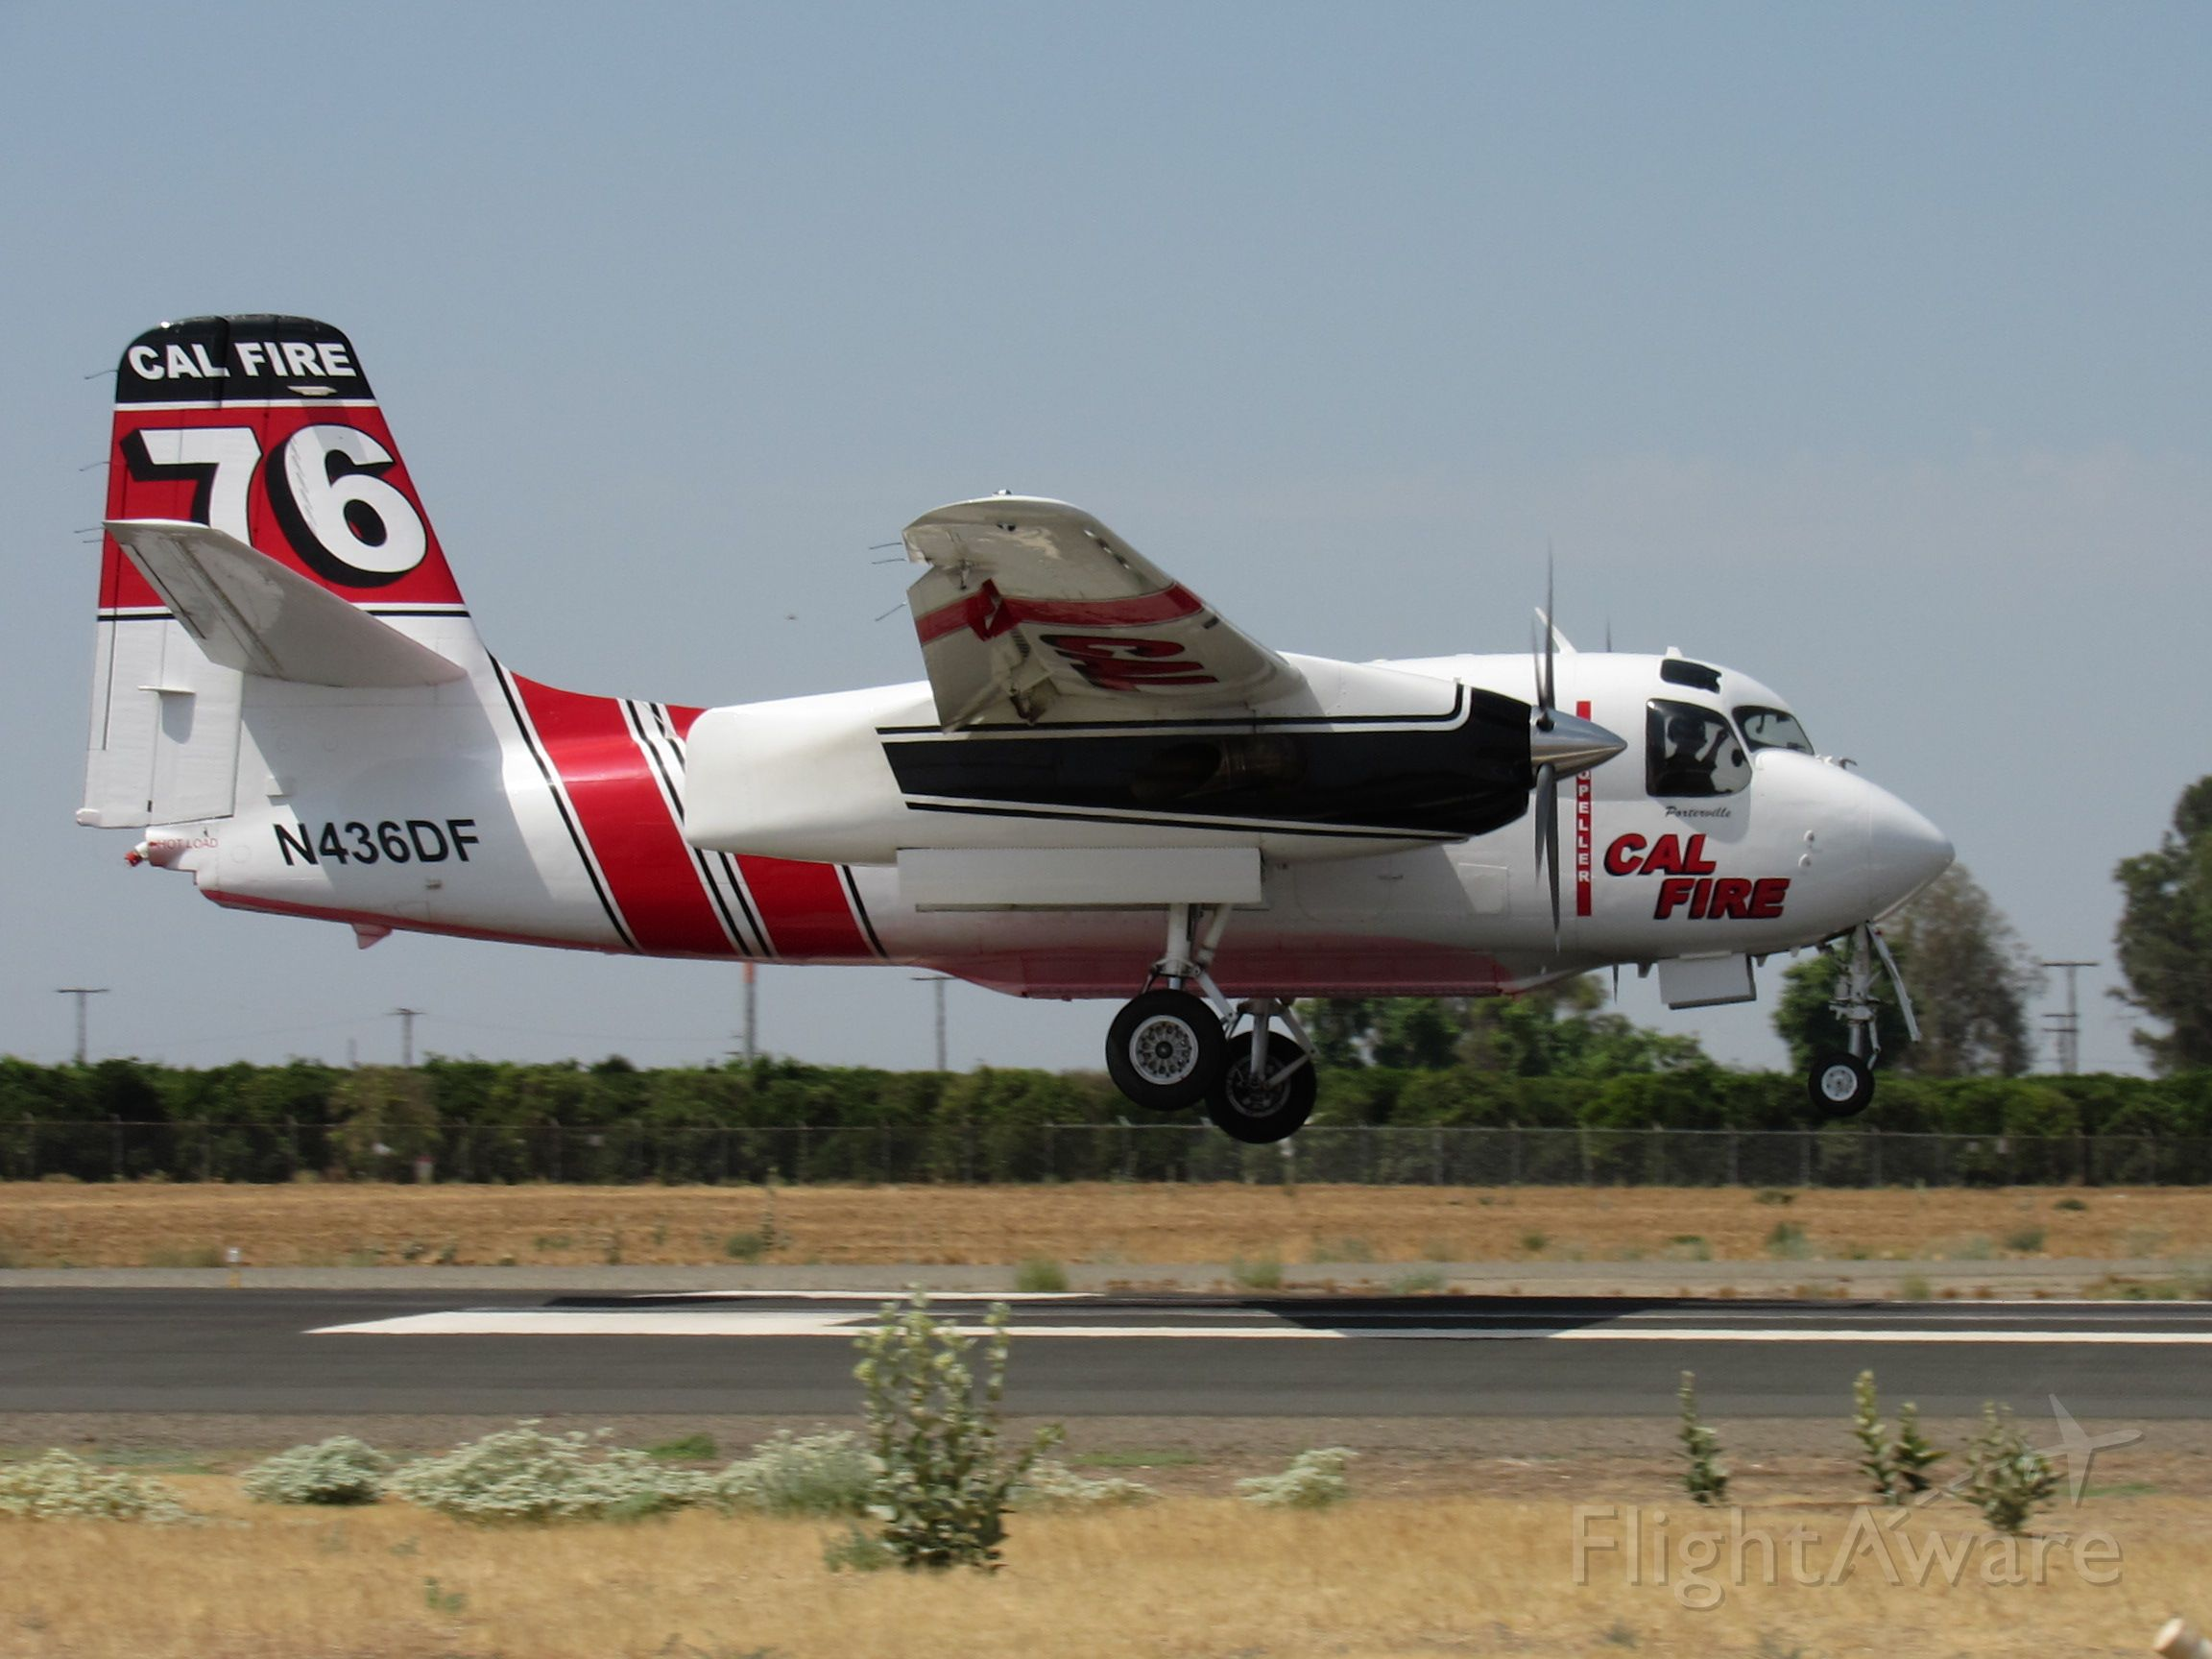 MARSH Turbo Tracker (N436DF) - N436DF landing right on the numbers at Porterville.